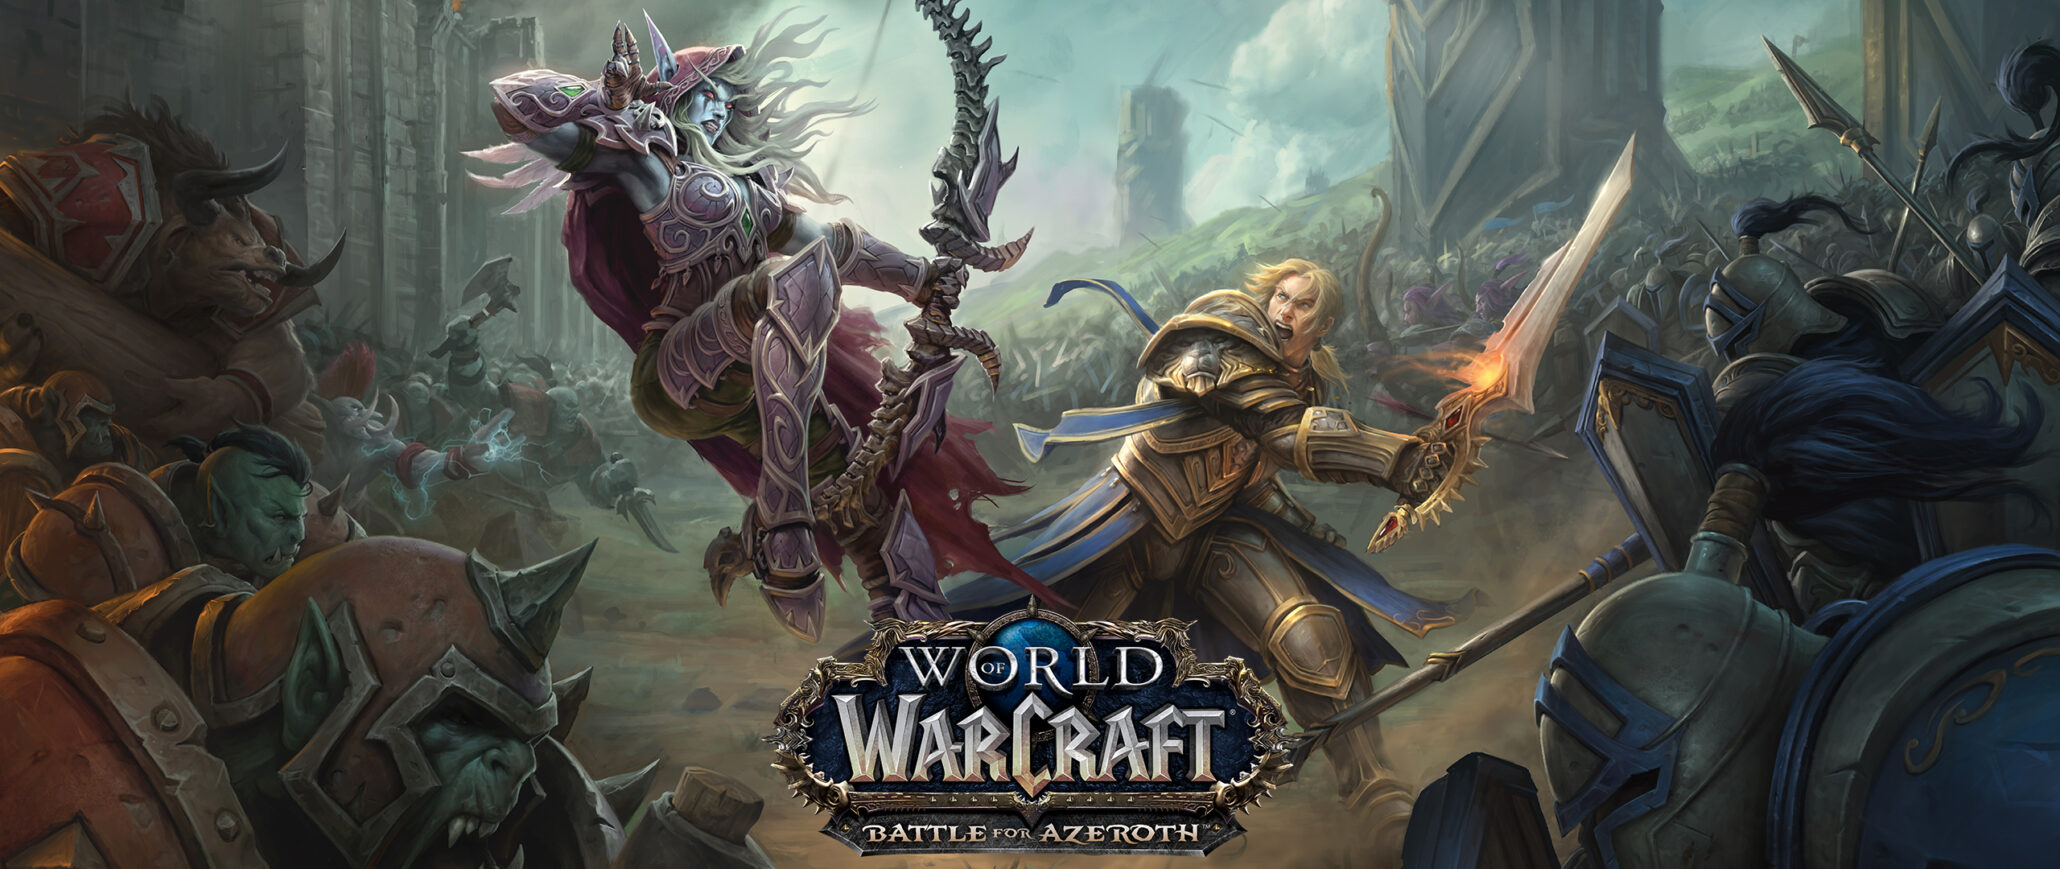 World of Warcraft Battle for Azeroth Beta Live Now